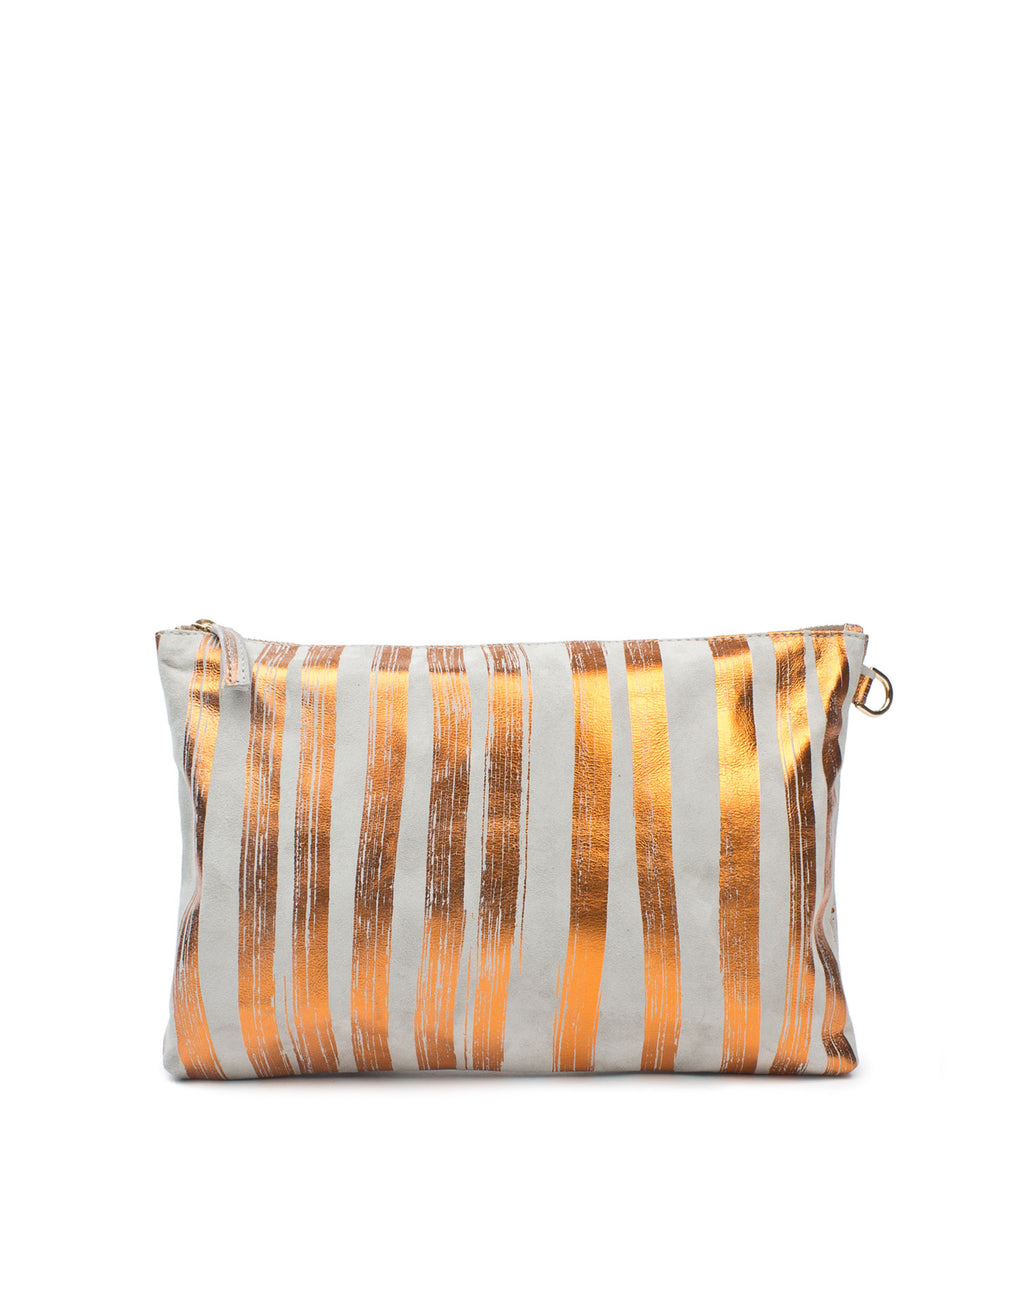 Grey and vibrant orange striped leather pouch bag, full lined in soft cotton printed with unique and signature brushstroke stripes. The lining includes convenient pockets to keep smaller items safe.